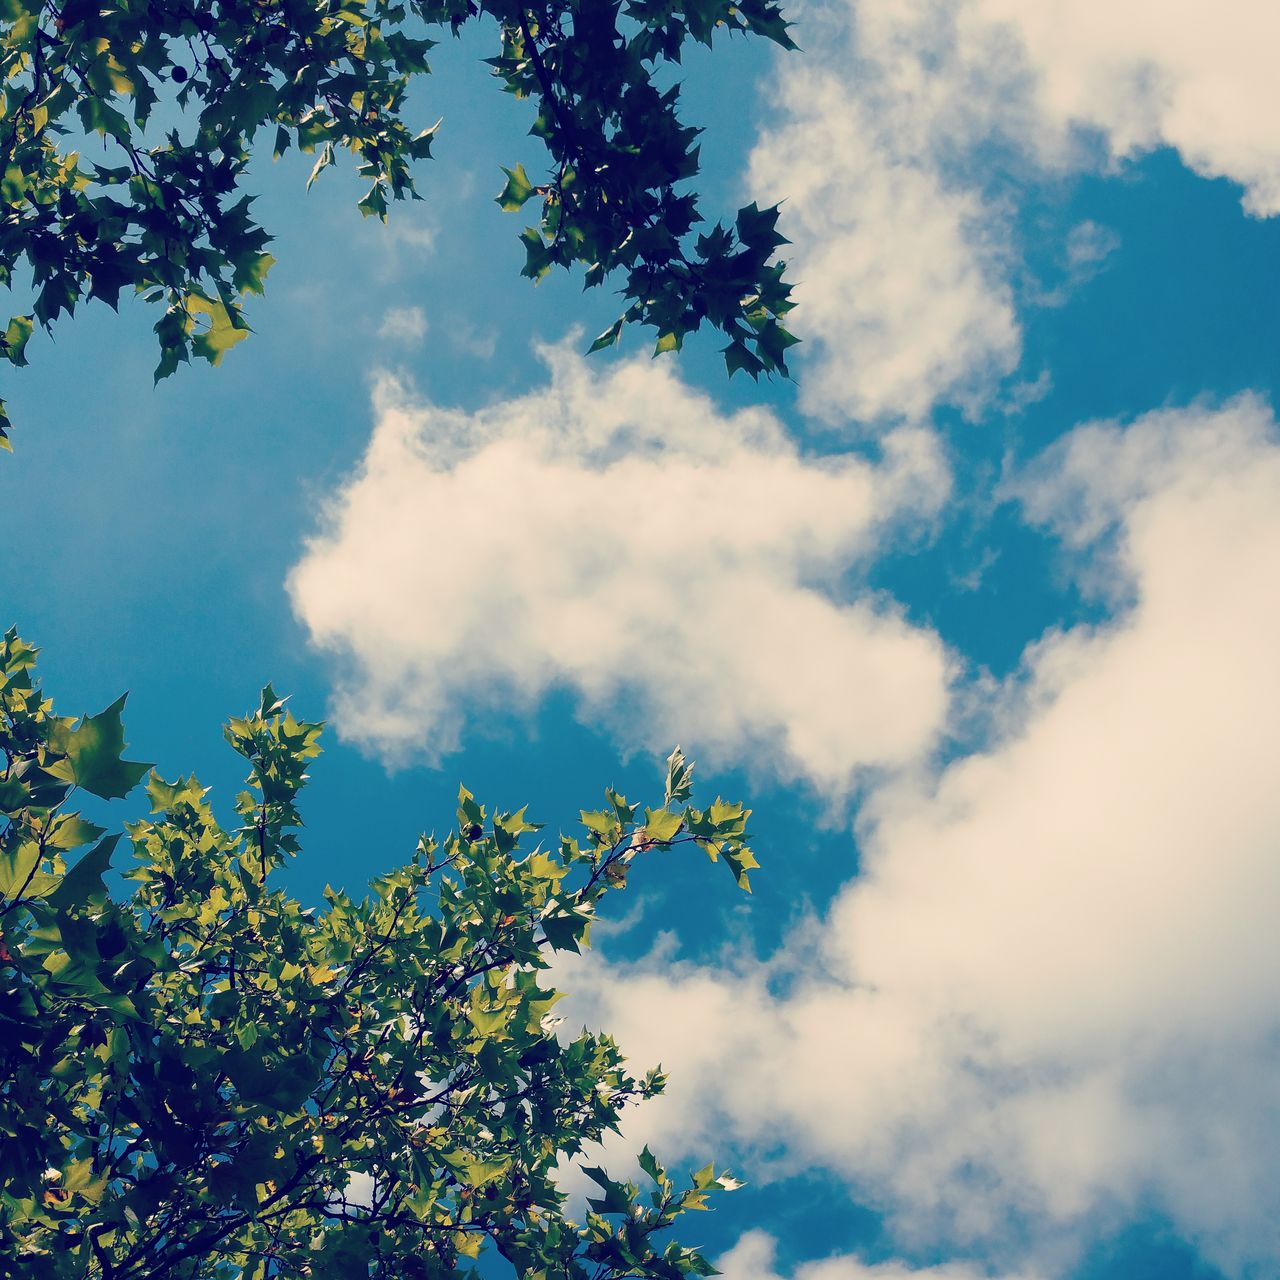 sky, low angle view, nature, beauty in nature, growth, cloud - sky, tree, day, outdoors, no people, scenics, plant, branch, freshness